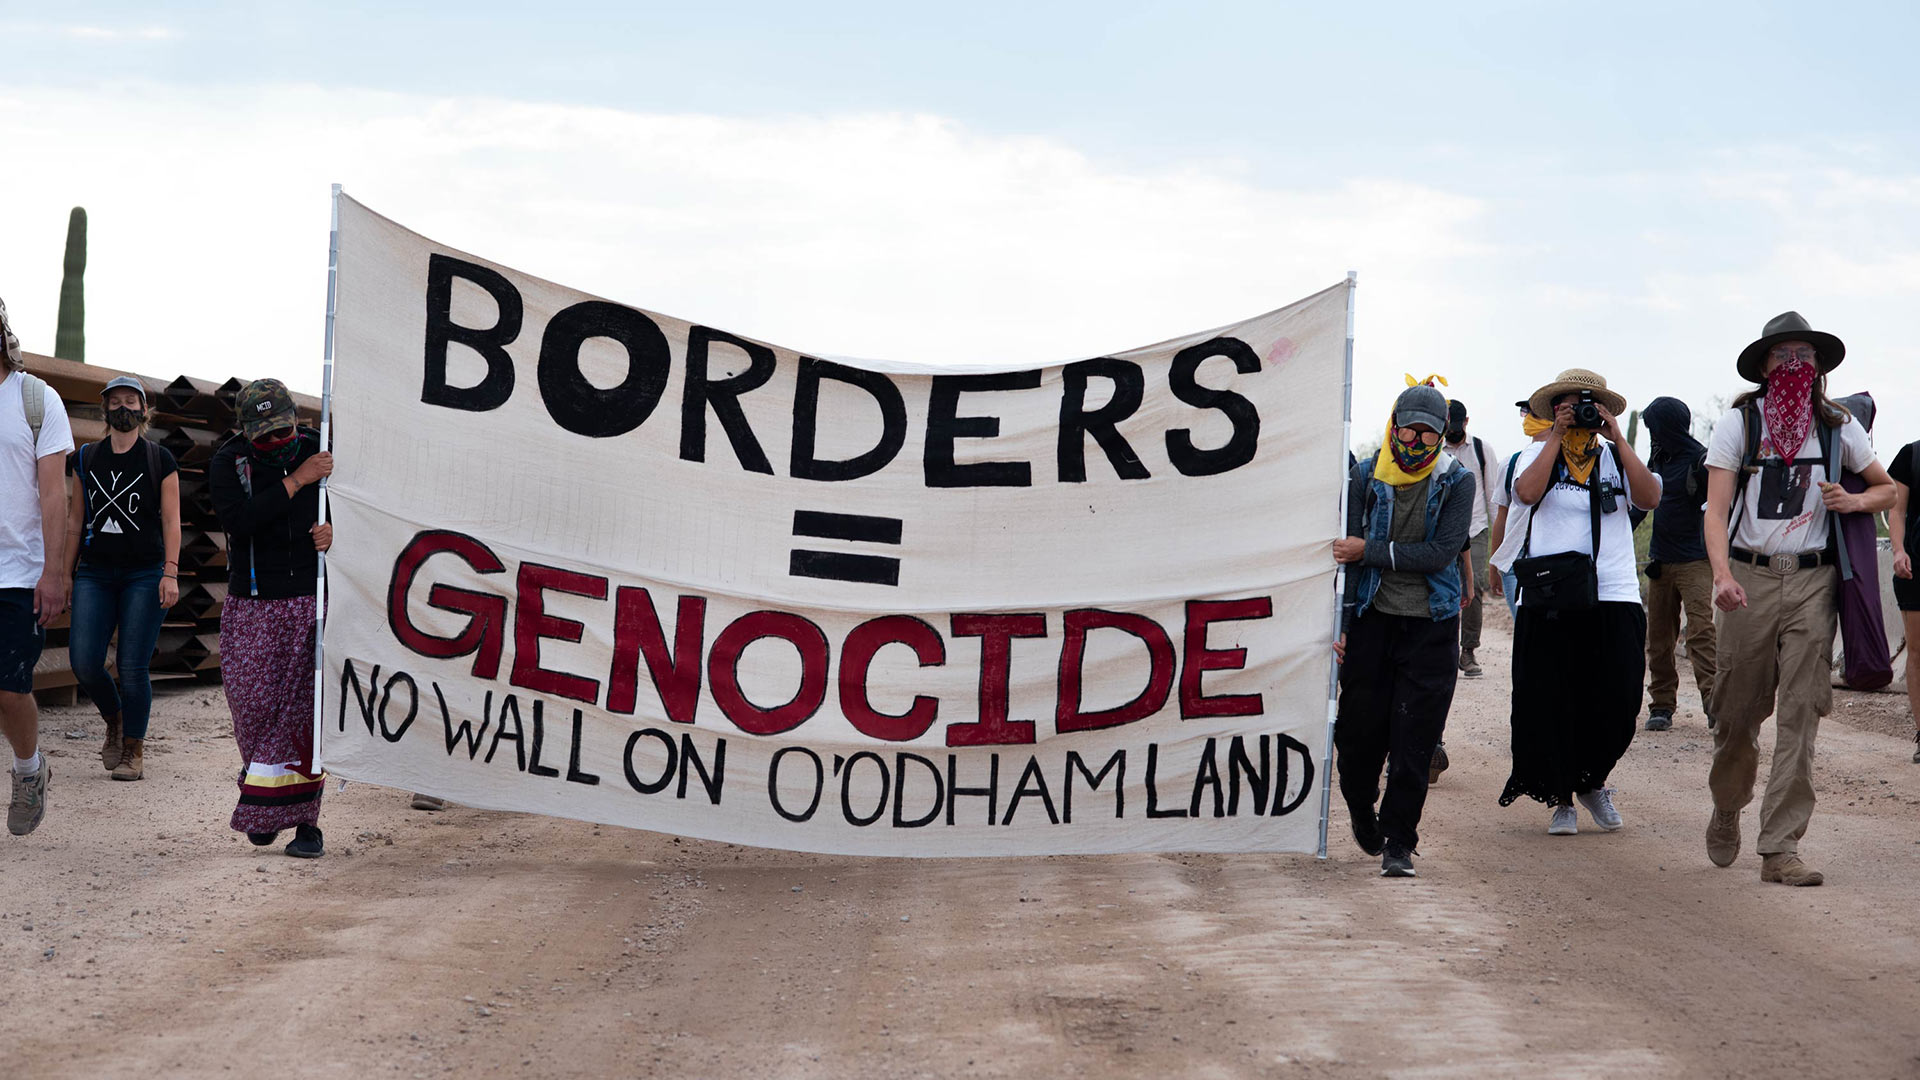 Indigenous-led protesters walk along a construction line in Organ Pipe Cactus National Monument in Sept. 2020.